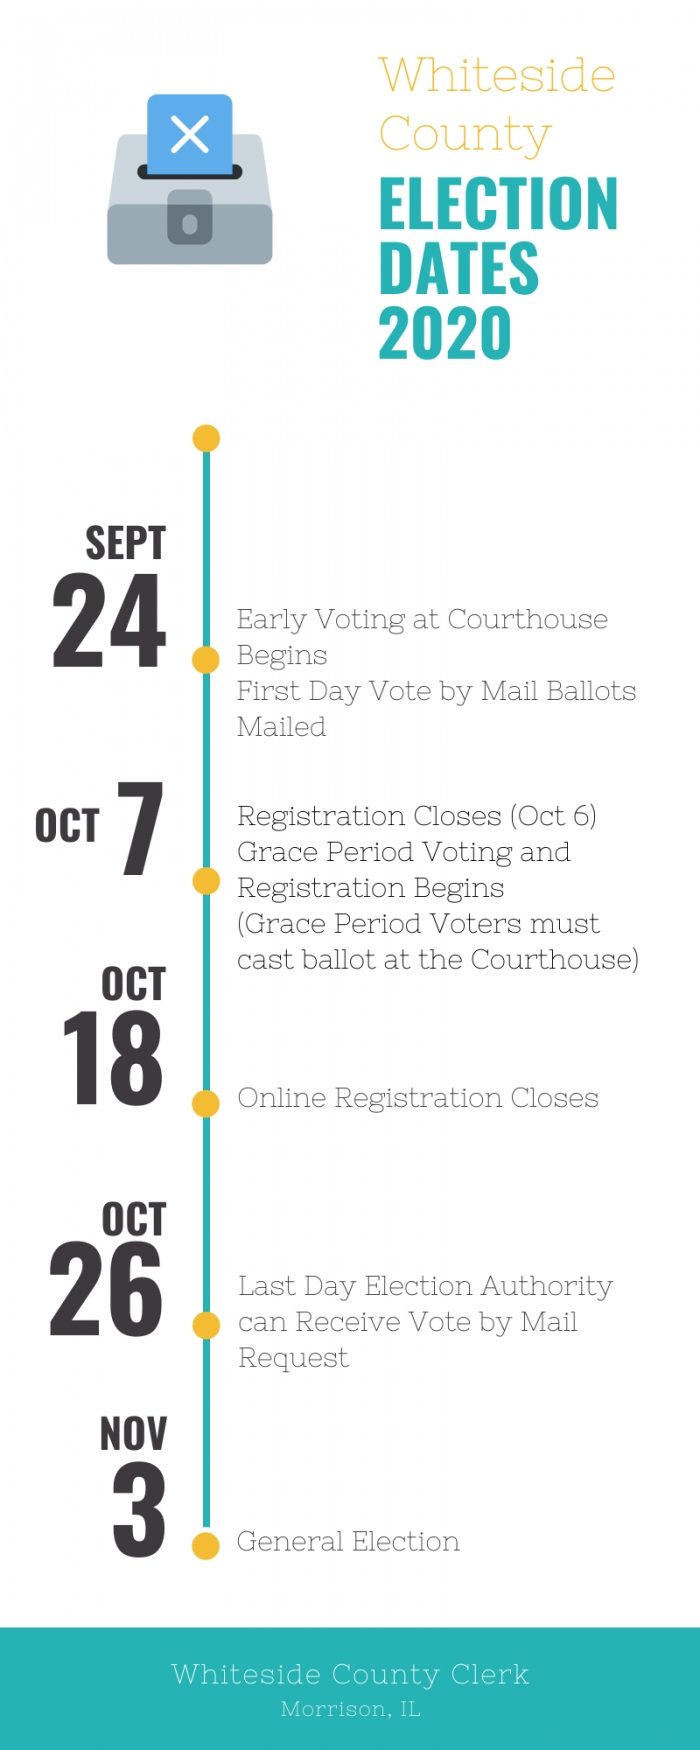 Important Election Dates